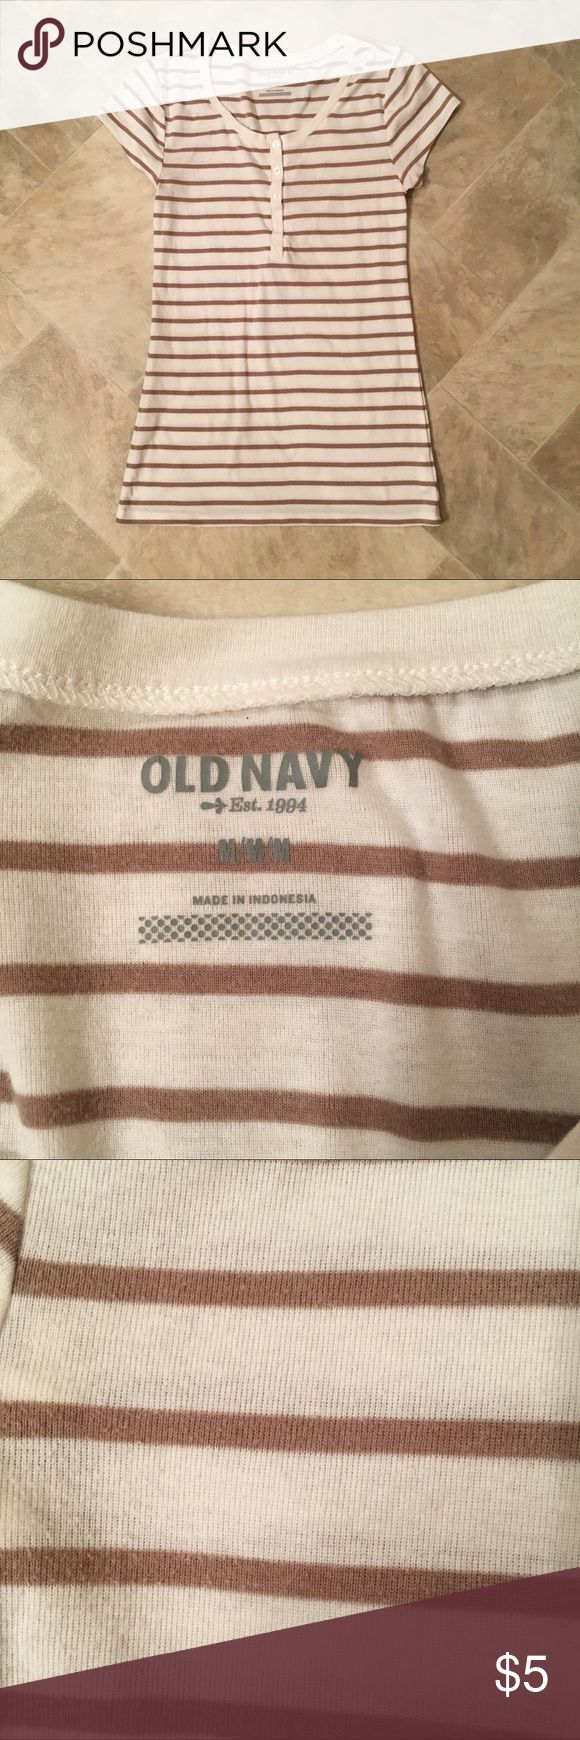 Old Navy short sleeve top In good condition. No rips, tears or stains that I can see. Has slight pilling (pictured). Old Navy Tops Tees - Short Sleeve